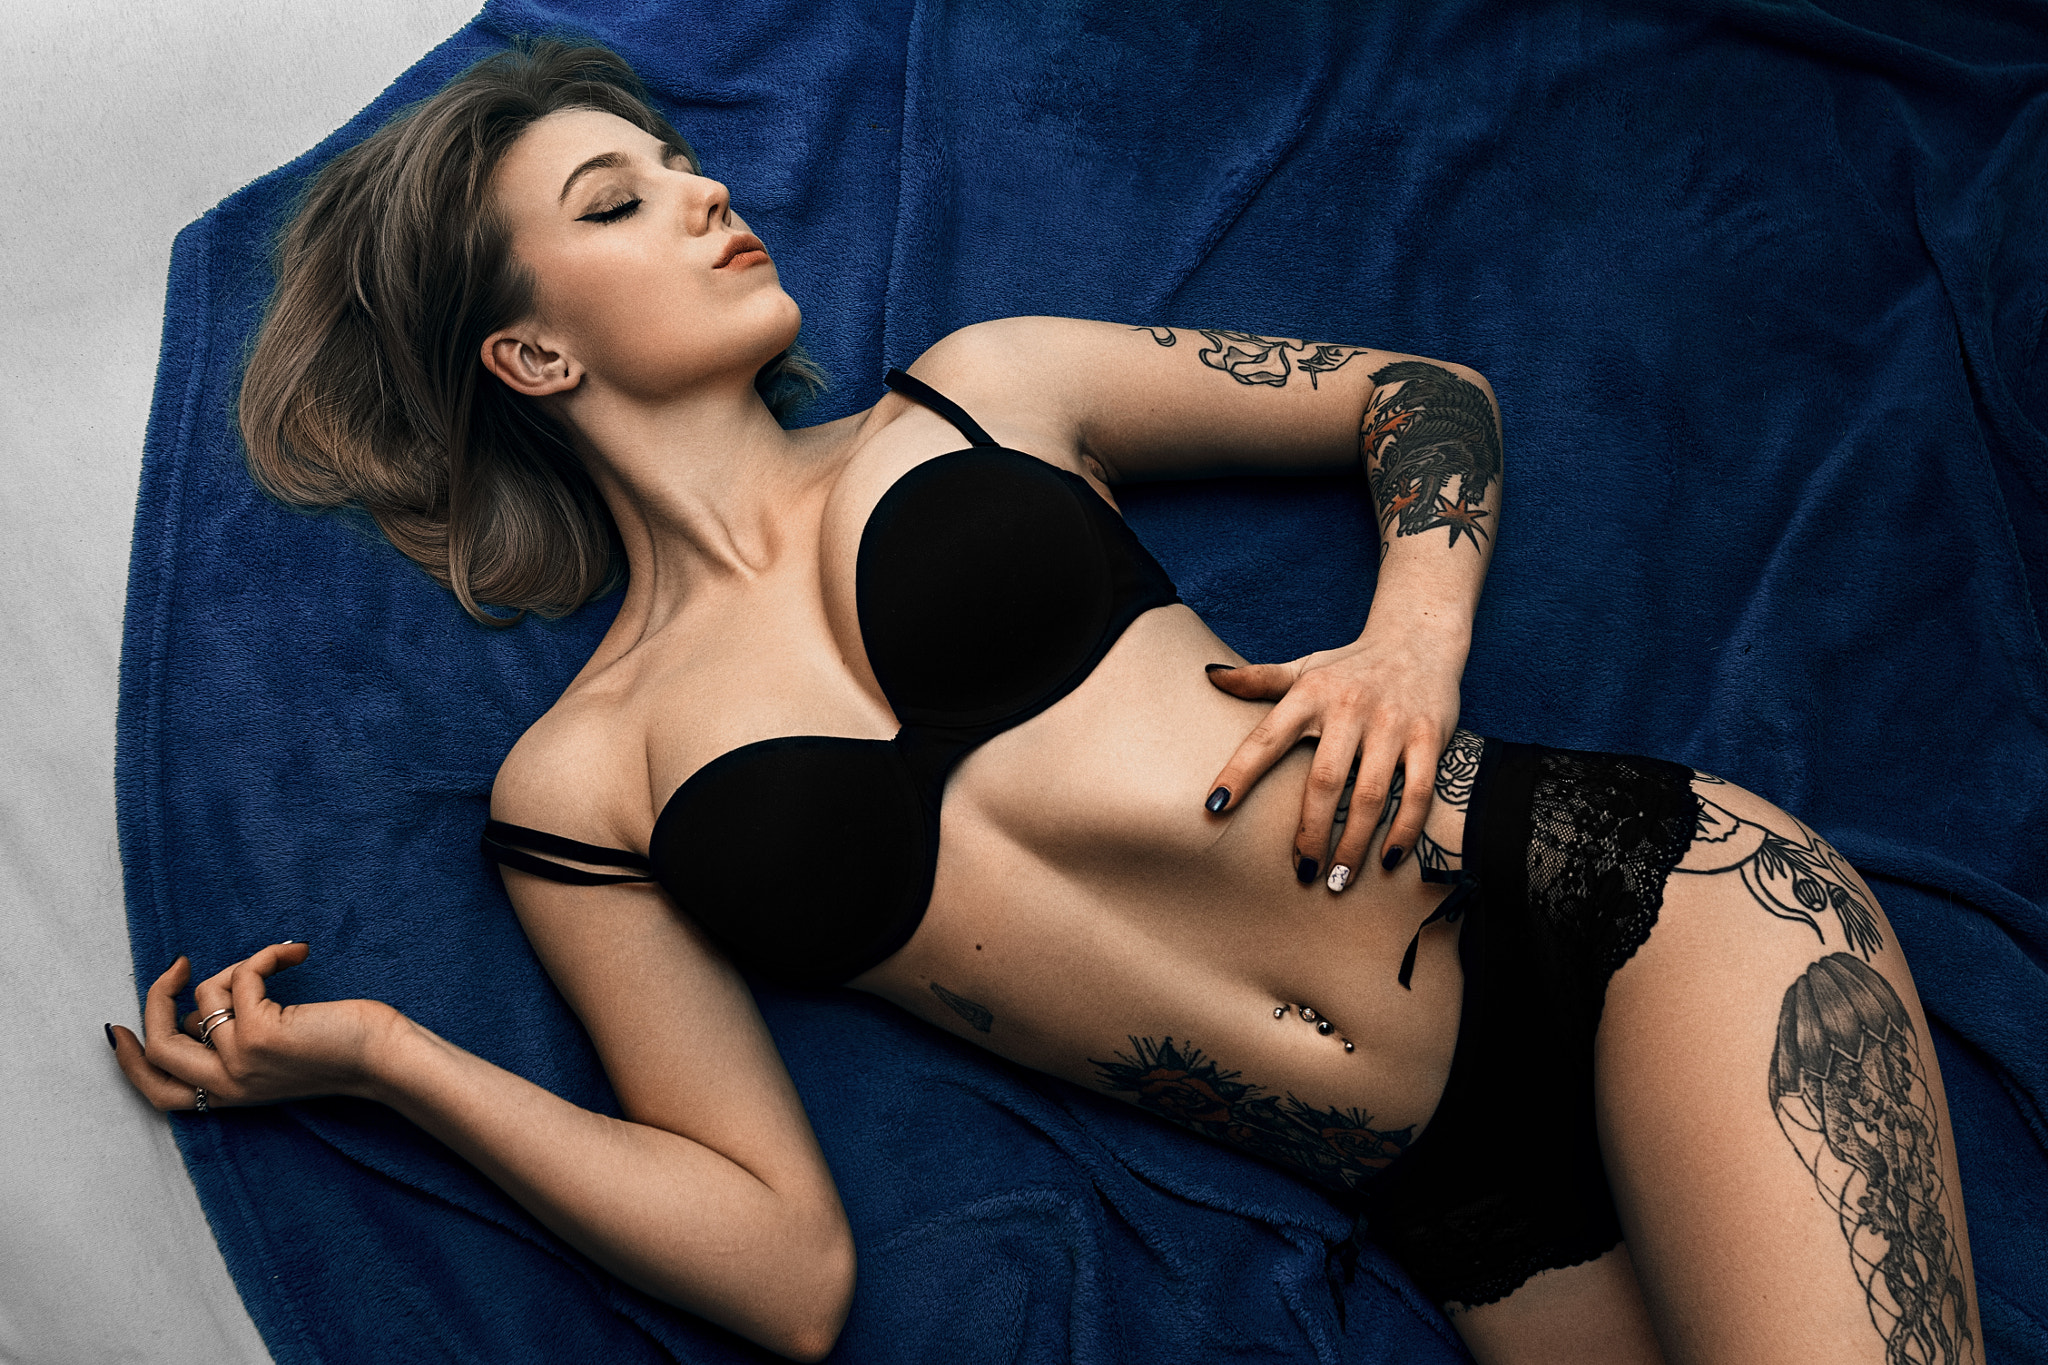 People 2048x1365 women tattoo belly pierced navel Stretched ears